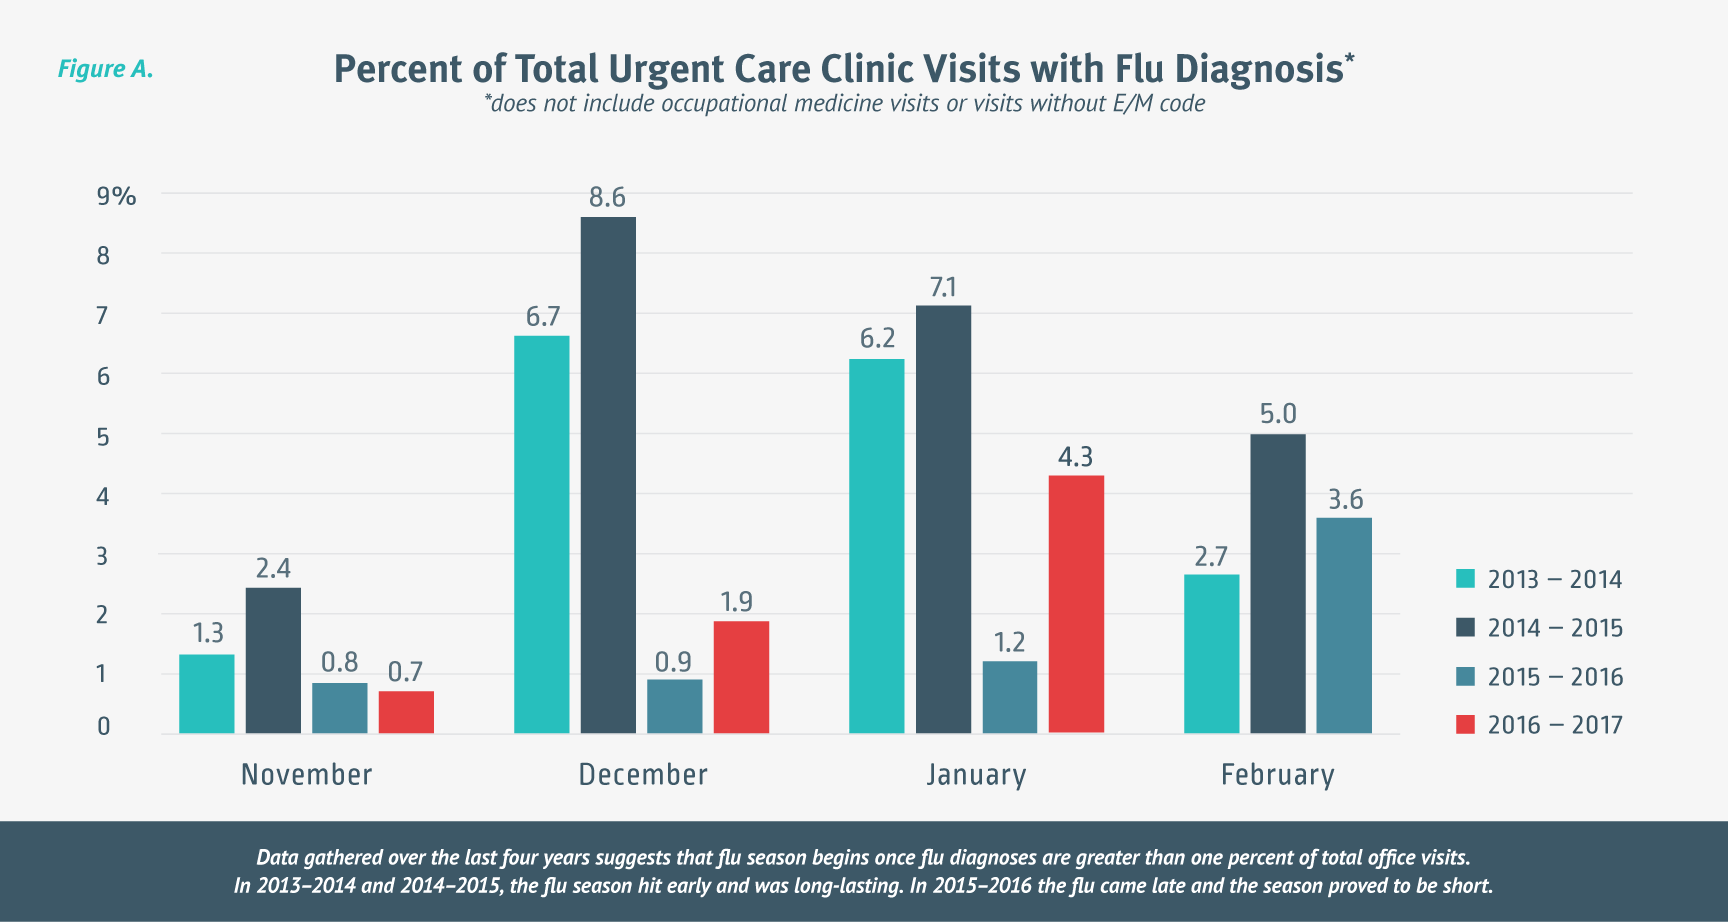 Percent-of-total-urgent-care-clinic-visits-with-flu